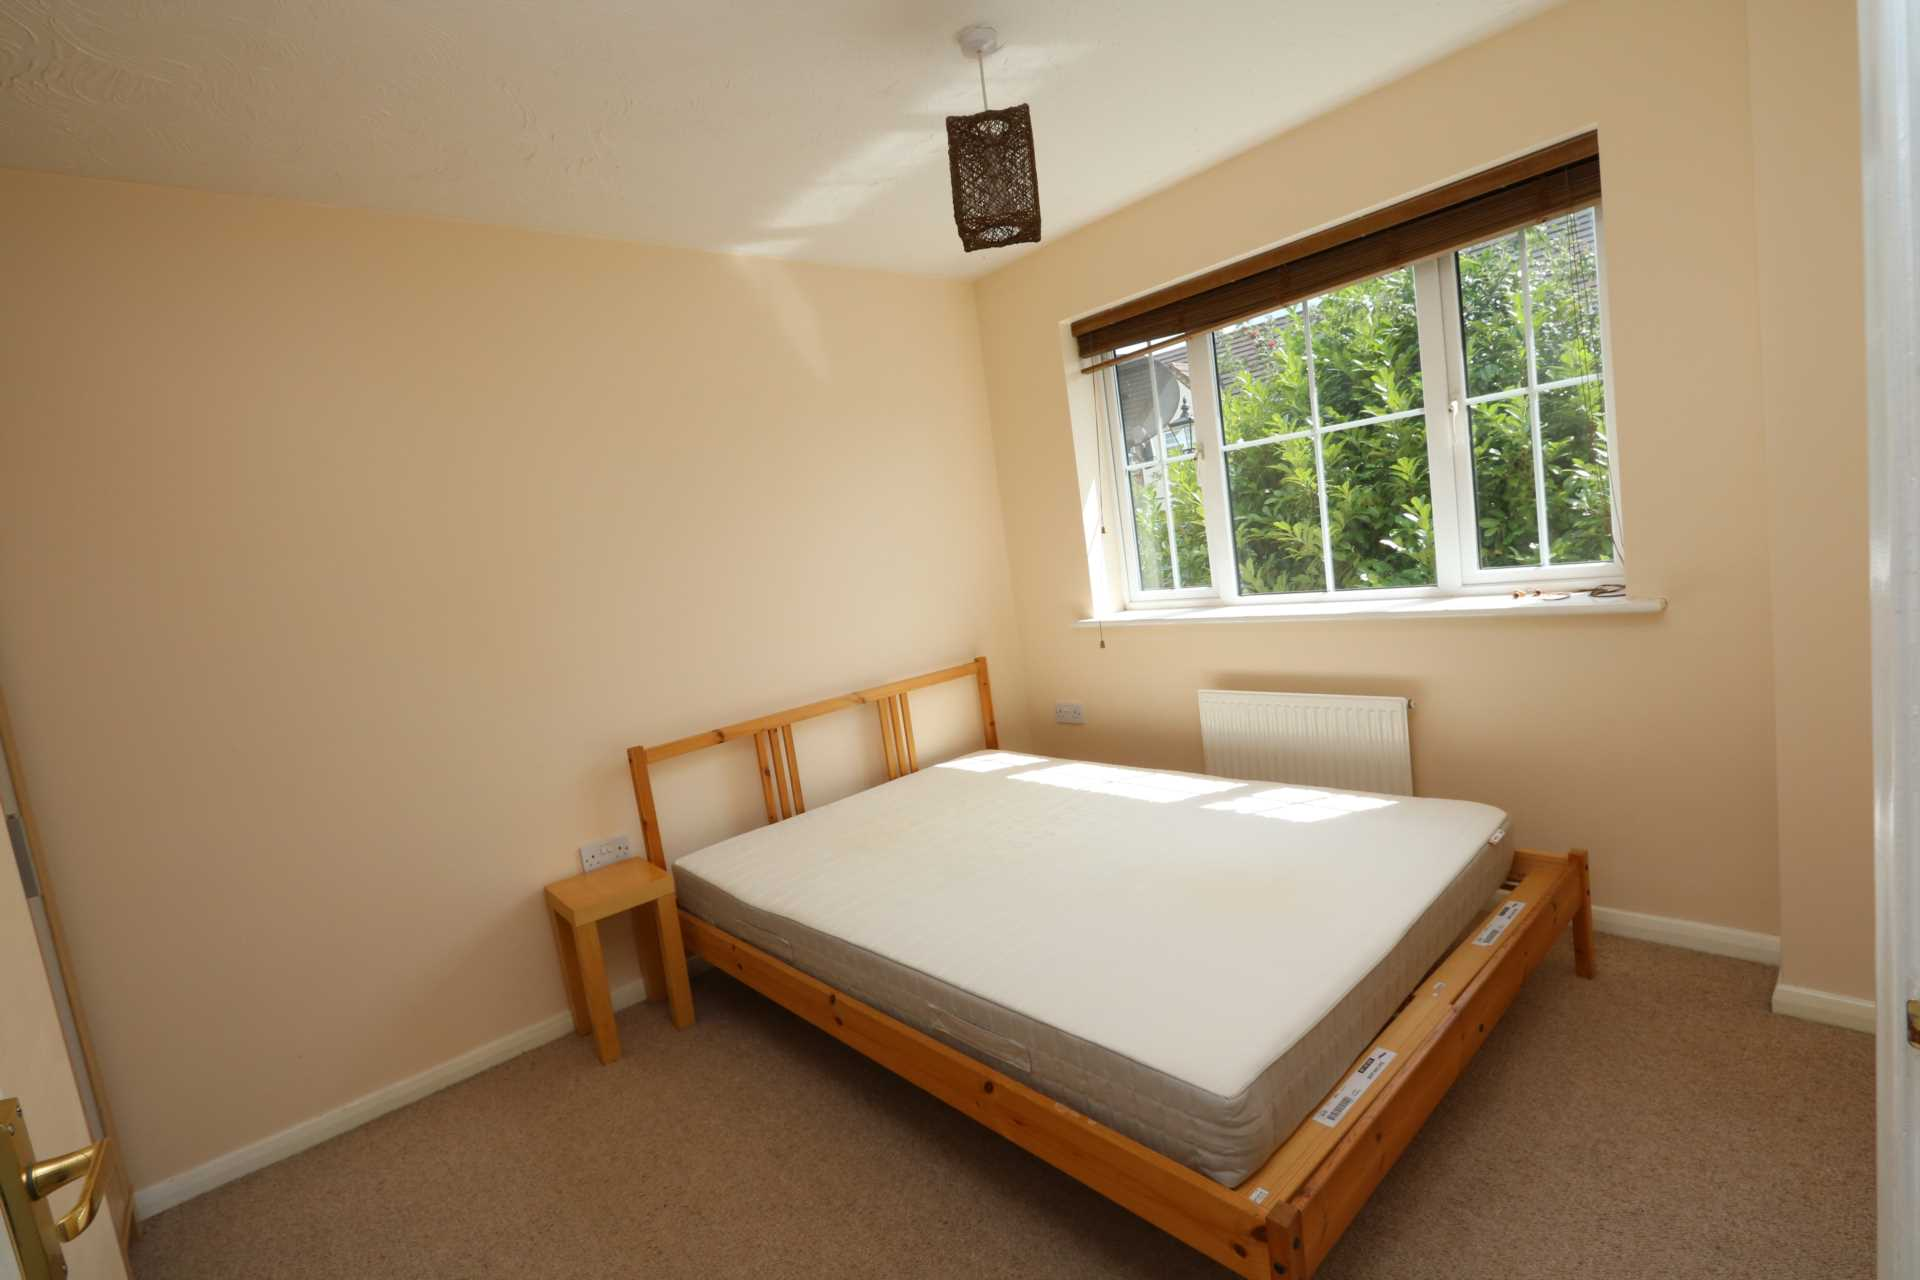 Perchfoot Close - 3 bedroom student home fully furnished, WIFI & bills included - NO FEES, Image 9